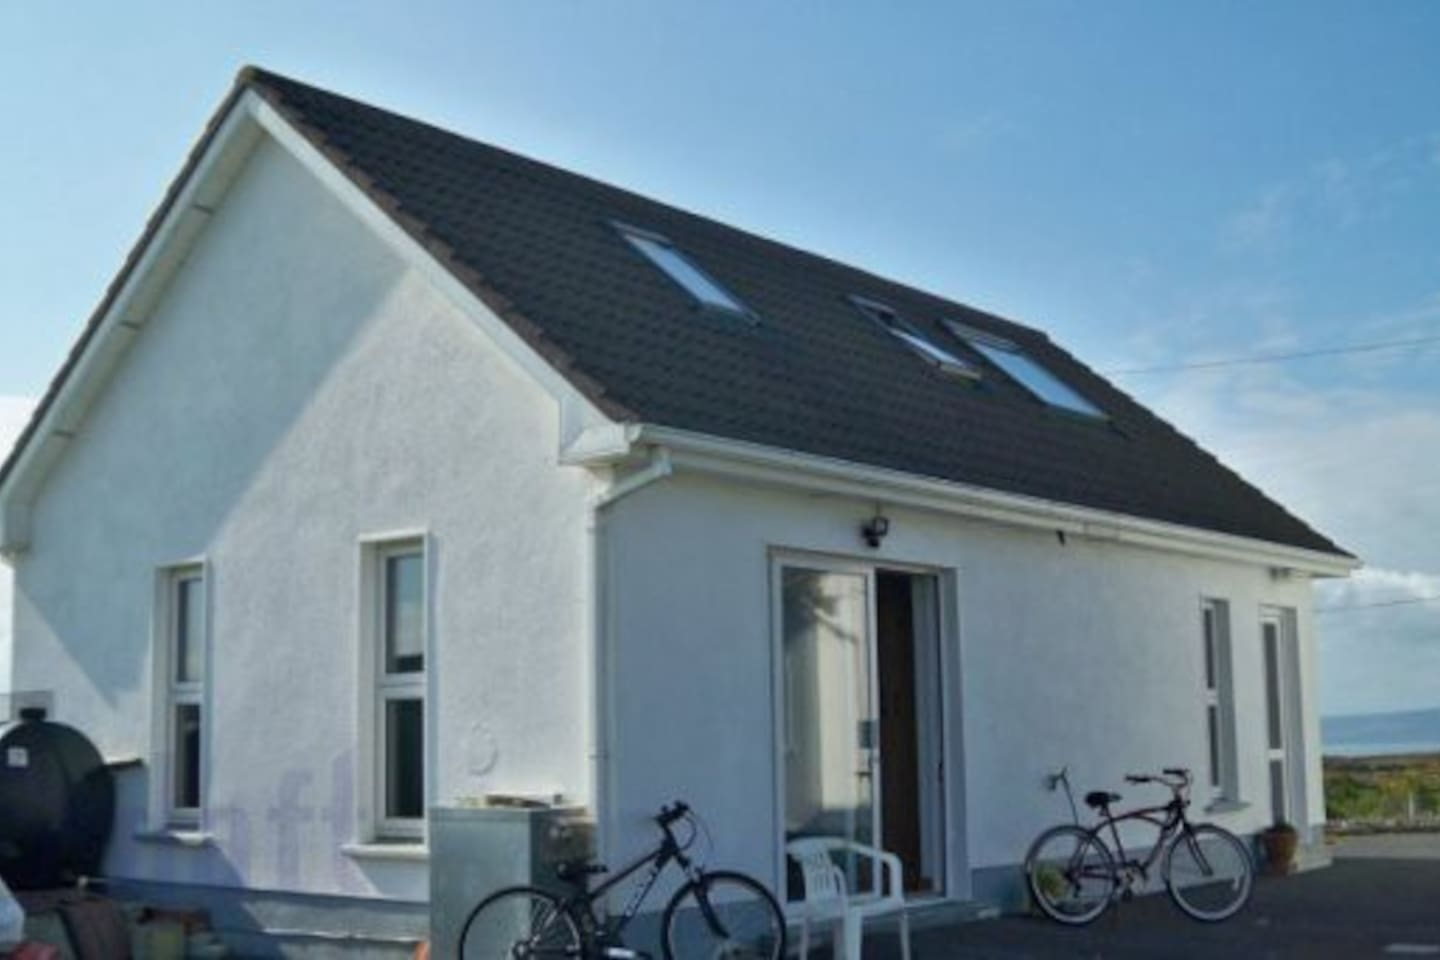 Free-standing 2-bedroom cottage, lots of light and space. Bicycles available for local tours, stunning views.